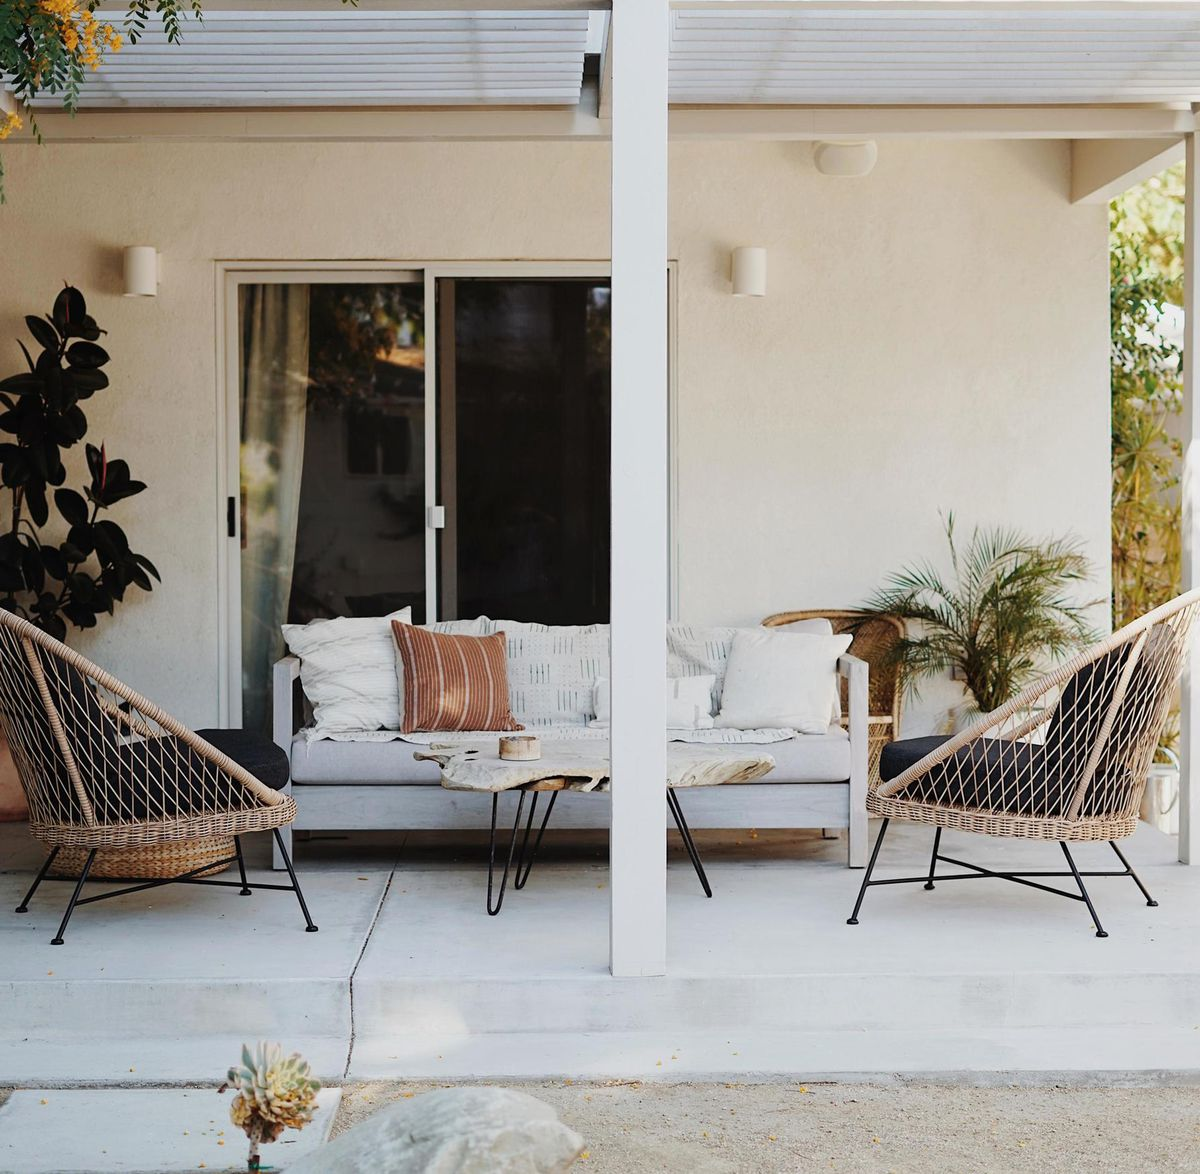 Summer 2021 Outdoor Rooms, Almost Makes Perfect, the back porch and pergola